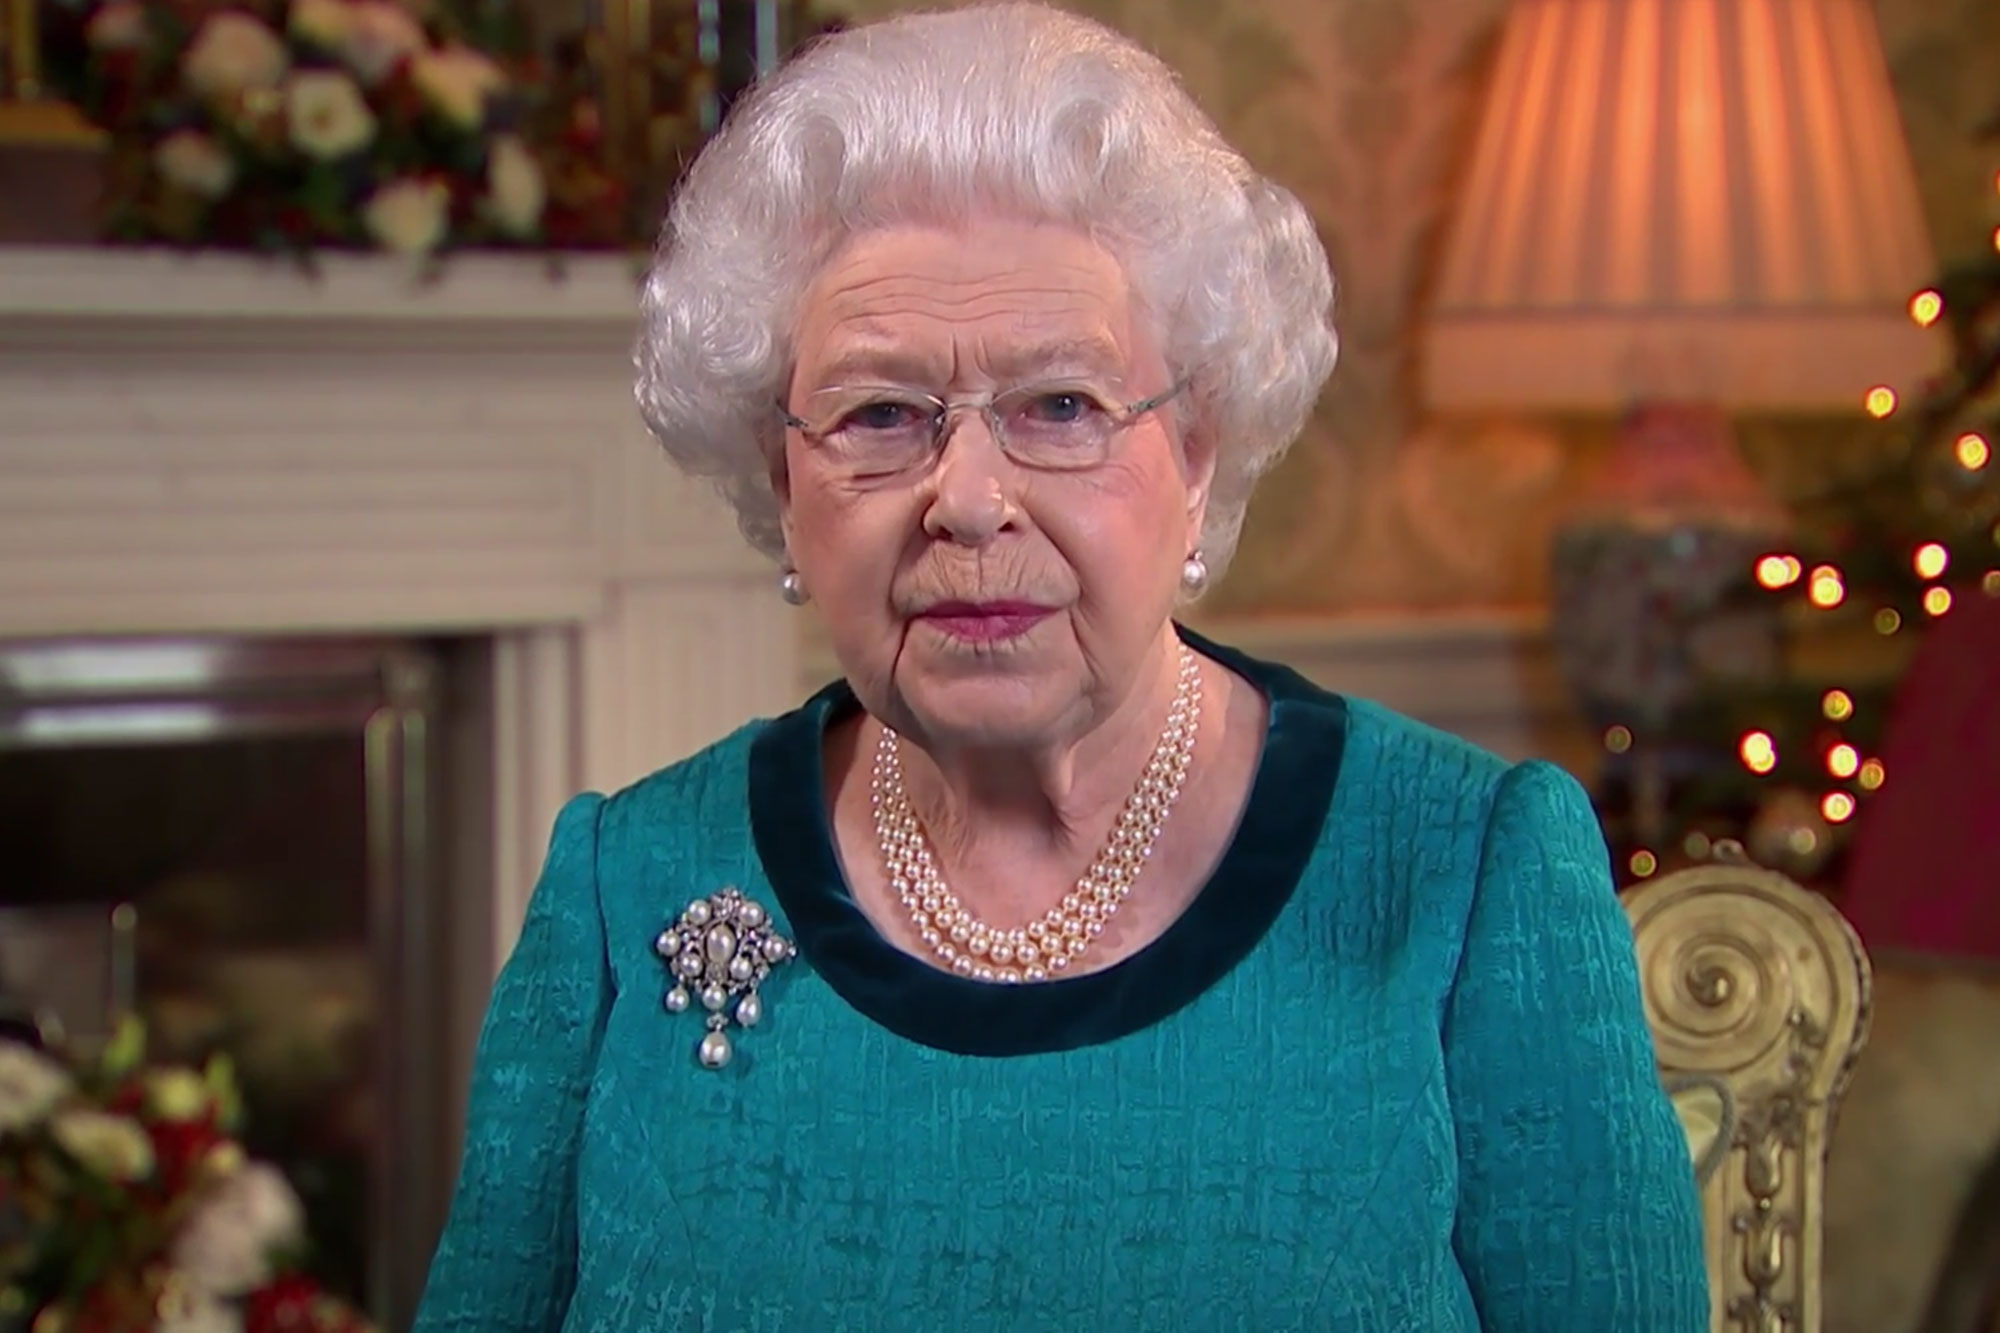 Queen Elizabeth Gives a Surprisingly Romantic Shout-Out in Her Annual Christmas Speech